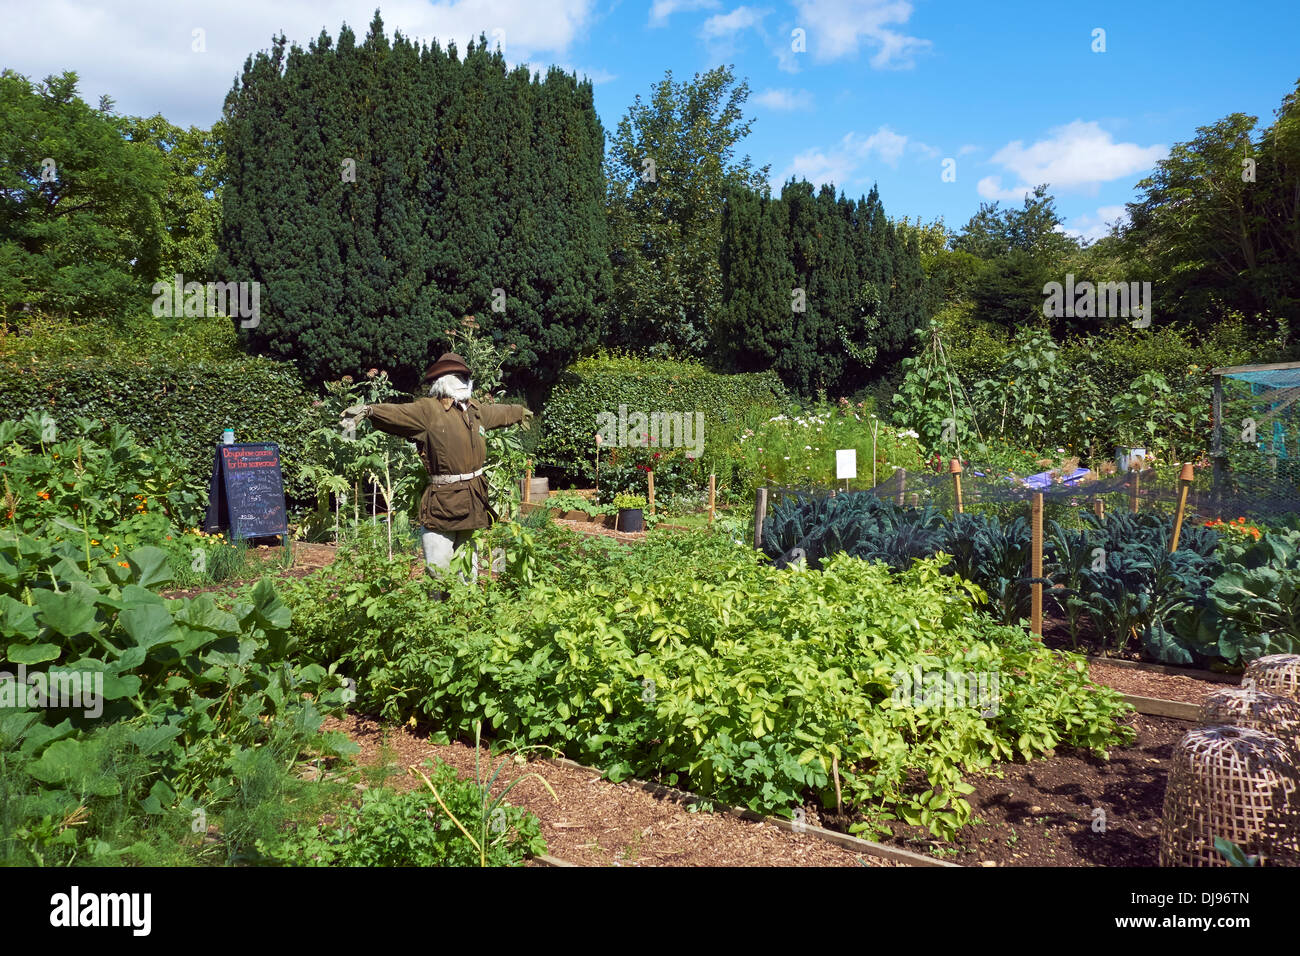 A scarecrow in the vegetable garden at Nunnington Hall, North Yorkshire. - Stock Image